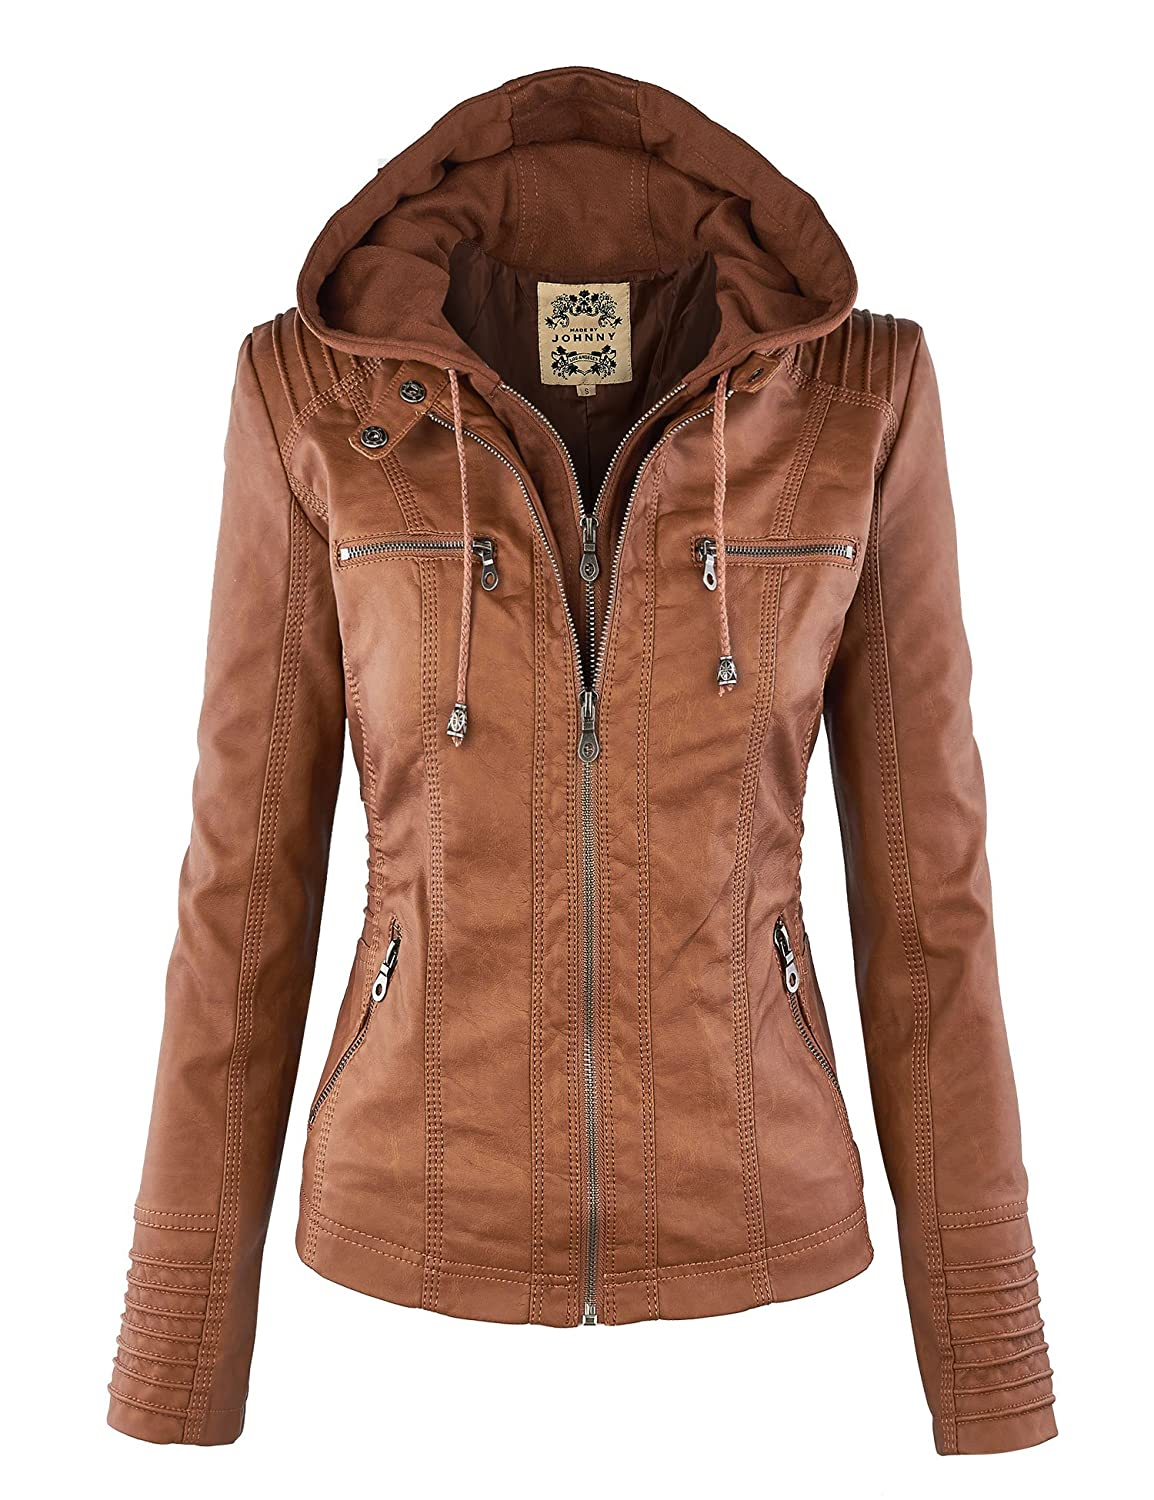 MBJ Womens Removable Hoodie Motorcyle Jacket: Amazon.ca: Clothing ...